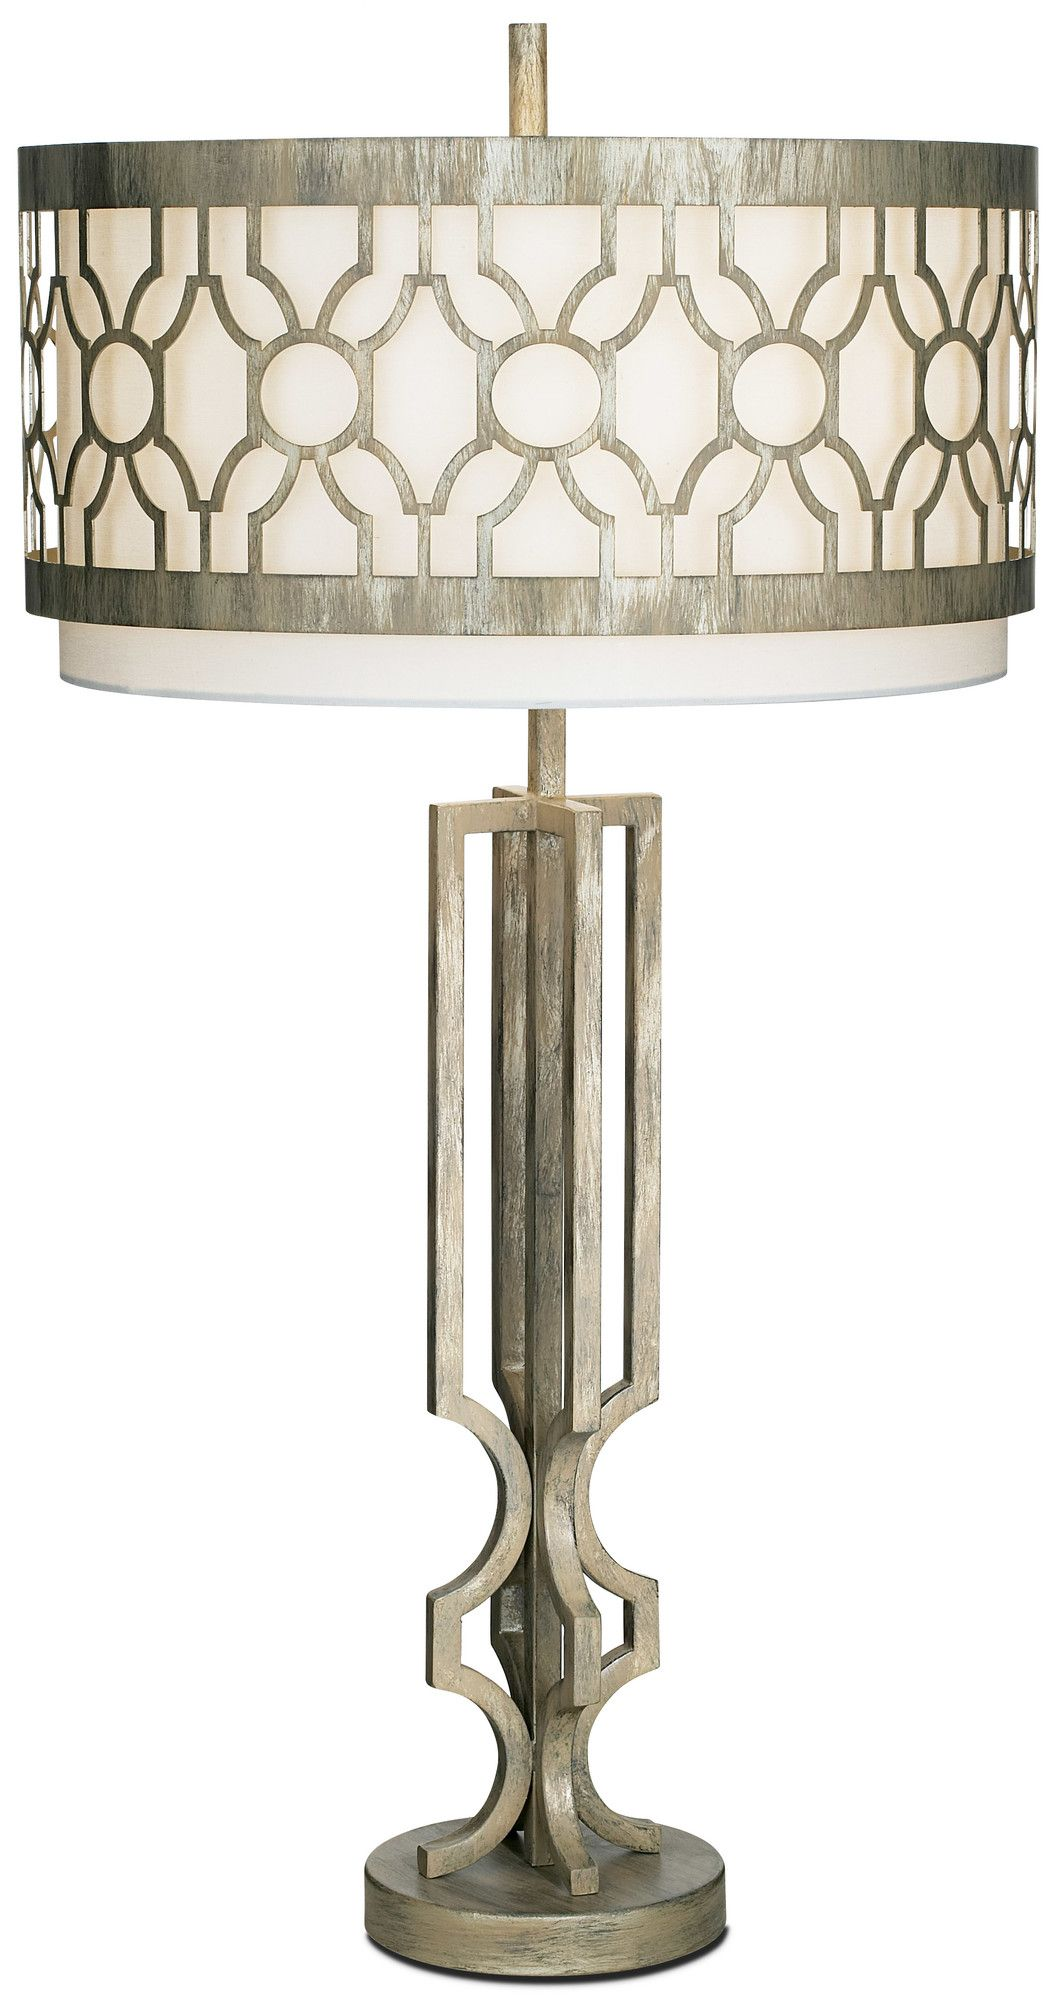 of design light let lighting be ideas lamp pendant pacific table rattan there coast